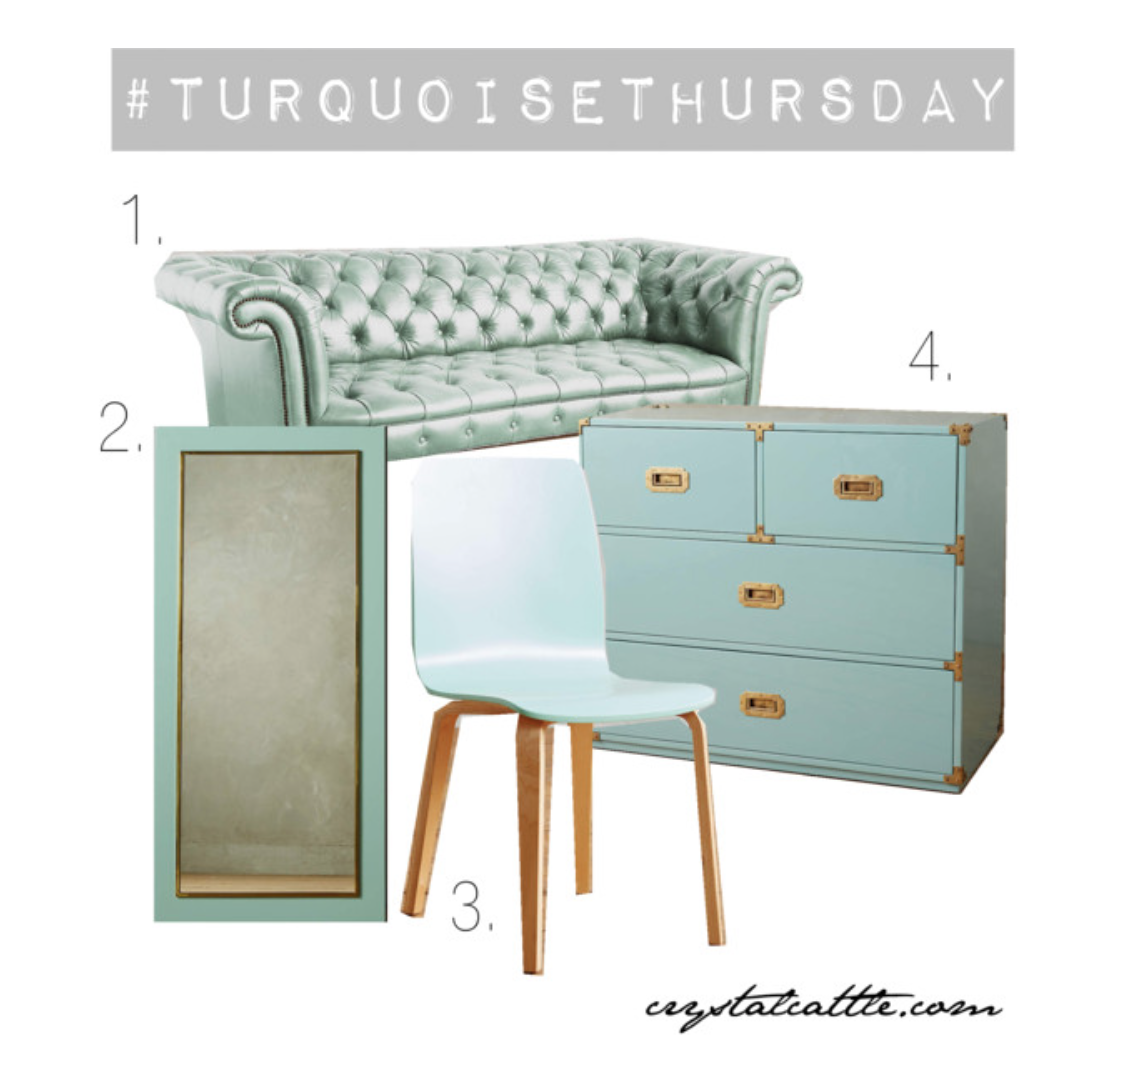 I Usually Am Not Crazy About Anthropologieu0027s Clothes As A Whole. However,  Their Home Pieces Are A Completely Different Story Especially When  Turquoise Is A ...